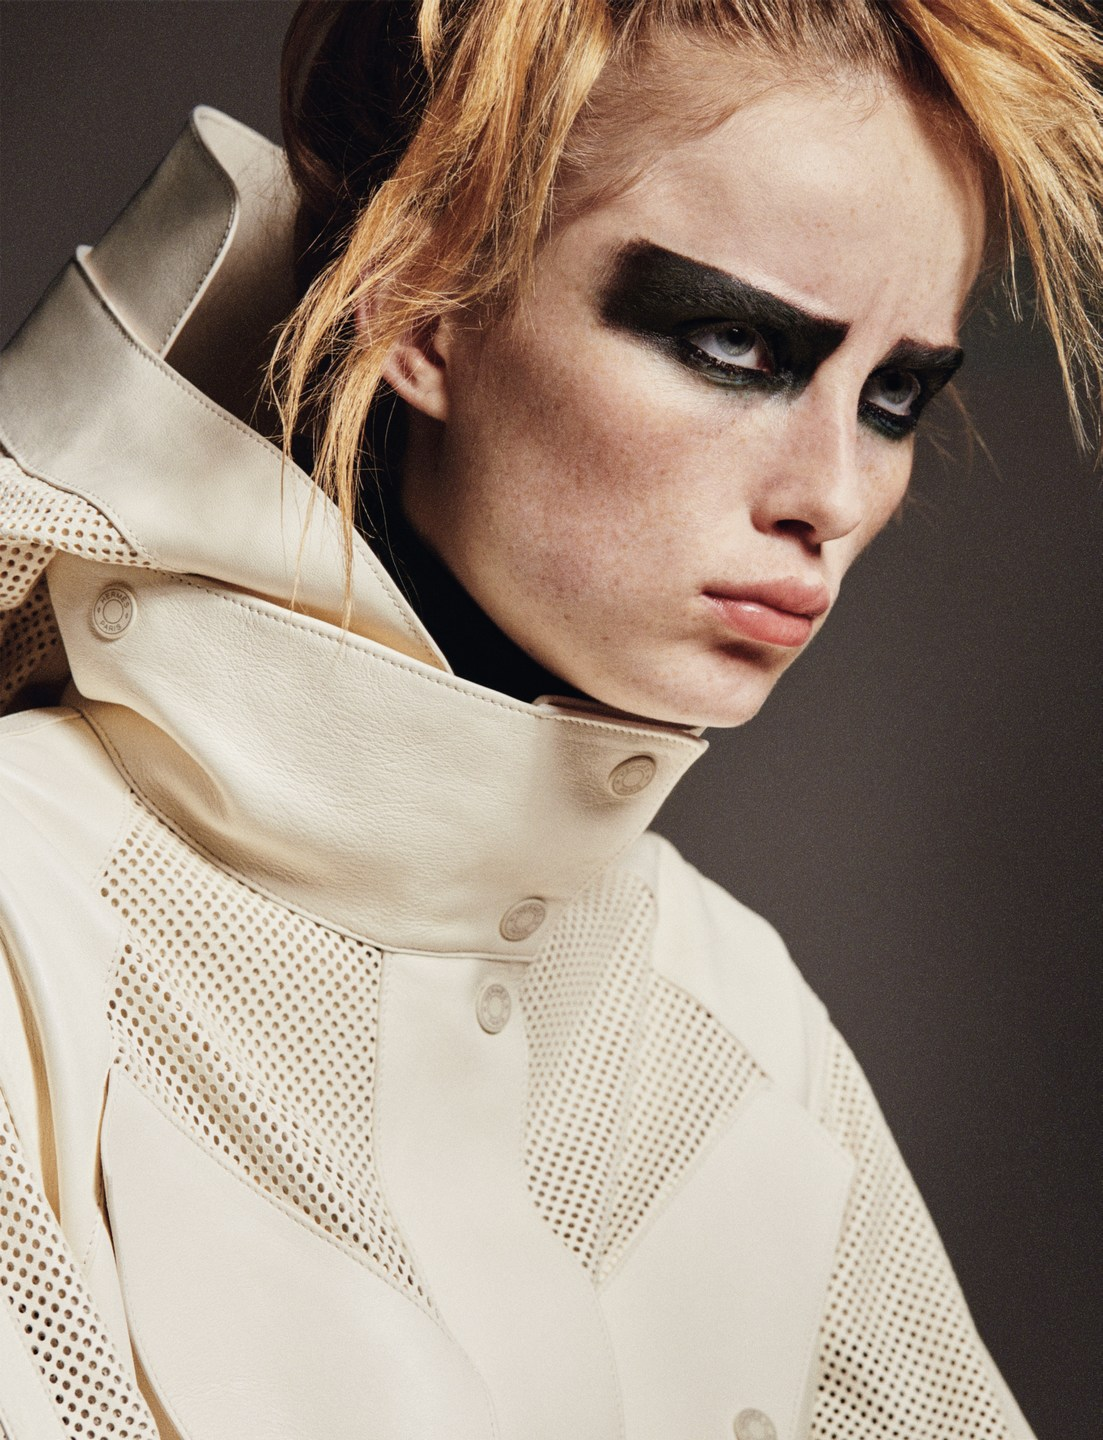 Rianne Van Rompaey wears modern mesh in a 'Command Performance' by Theo Sion